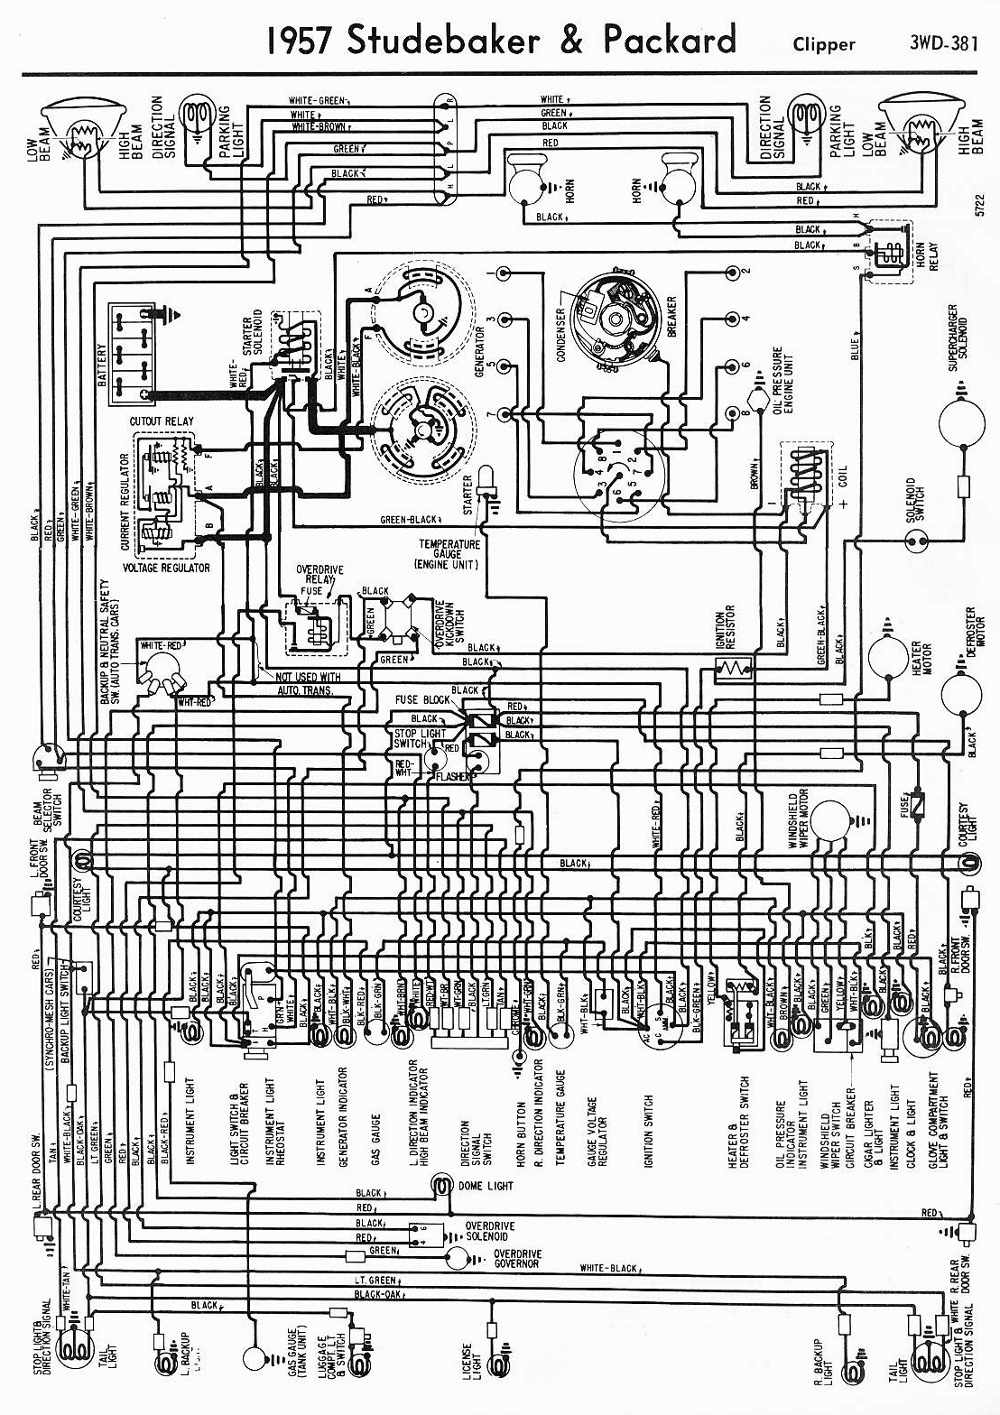 wiring diagrams 911 1957 studebaker and packard clipper wiring diagram rh wiringdiagrams911 blogspot com 1951 packard wiring diagram packard c230a wiring diagram